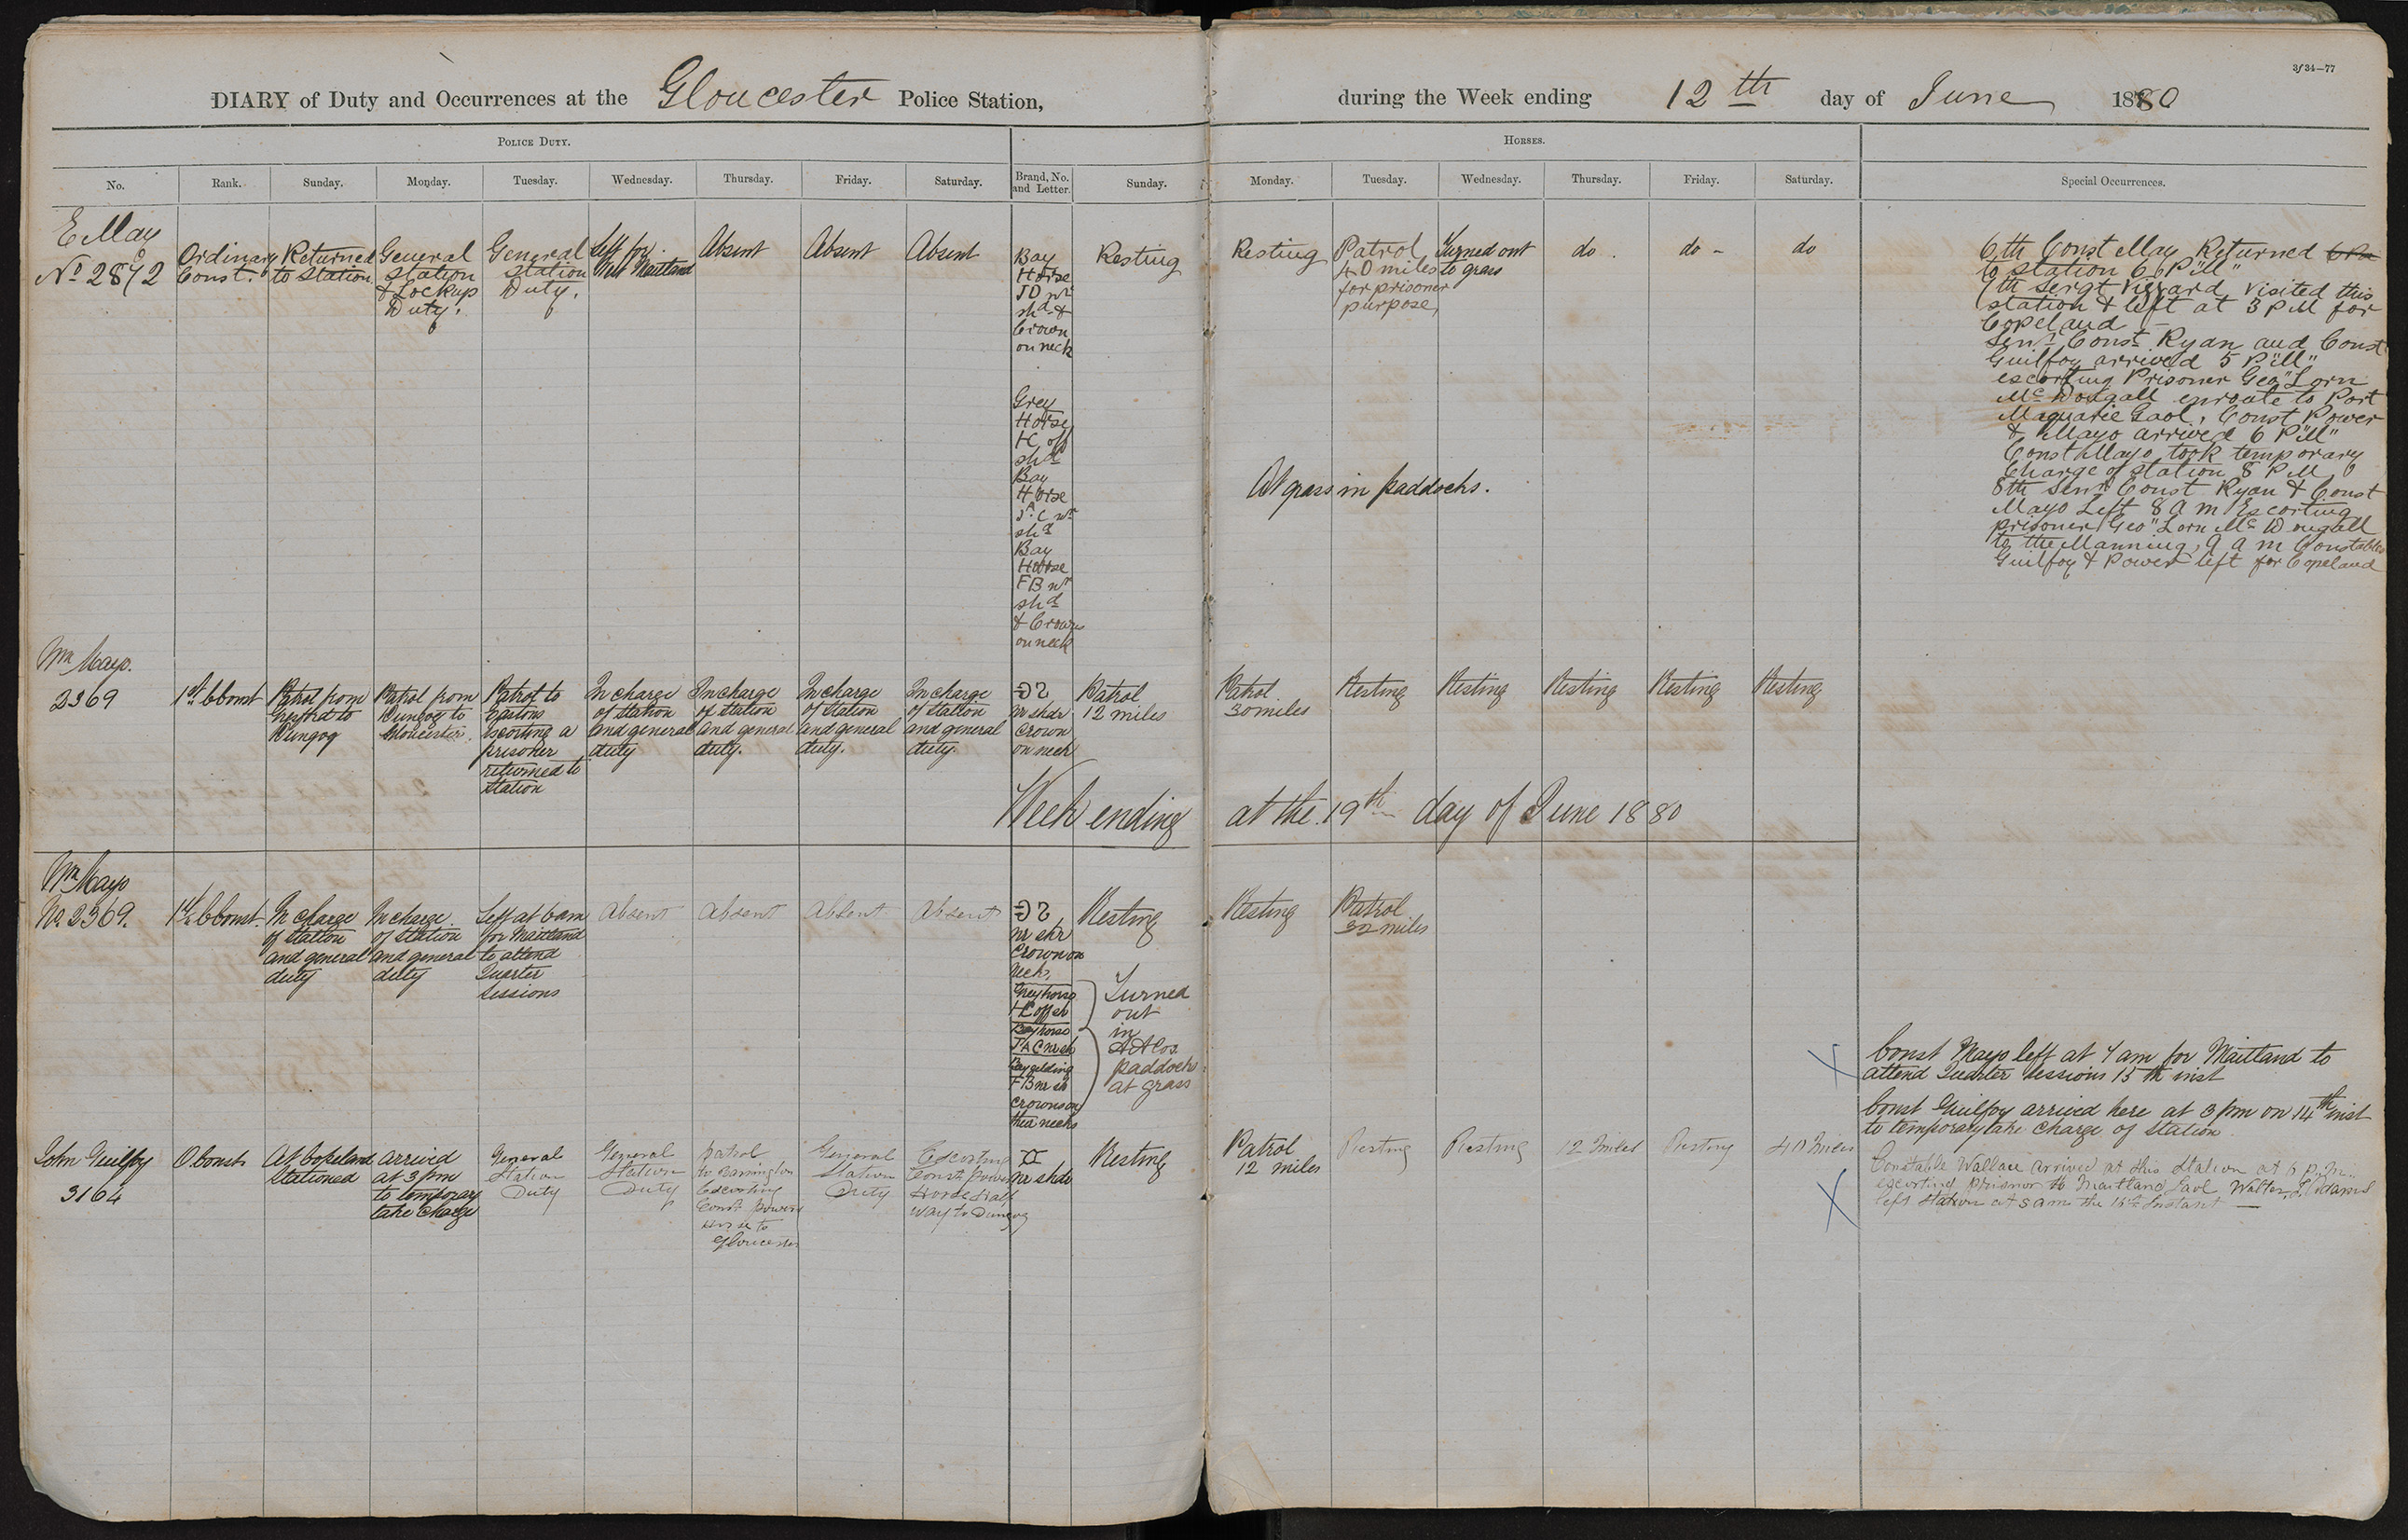 Diary of duty and occurrences at the Gloucester Police Station during the week ending the 12th day of June 1880